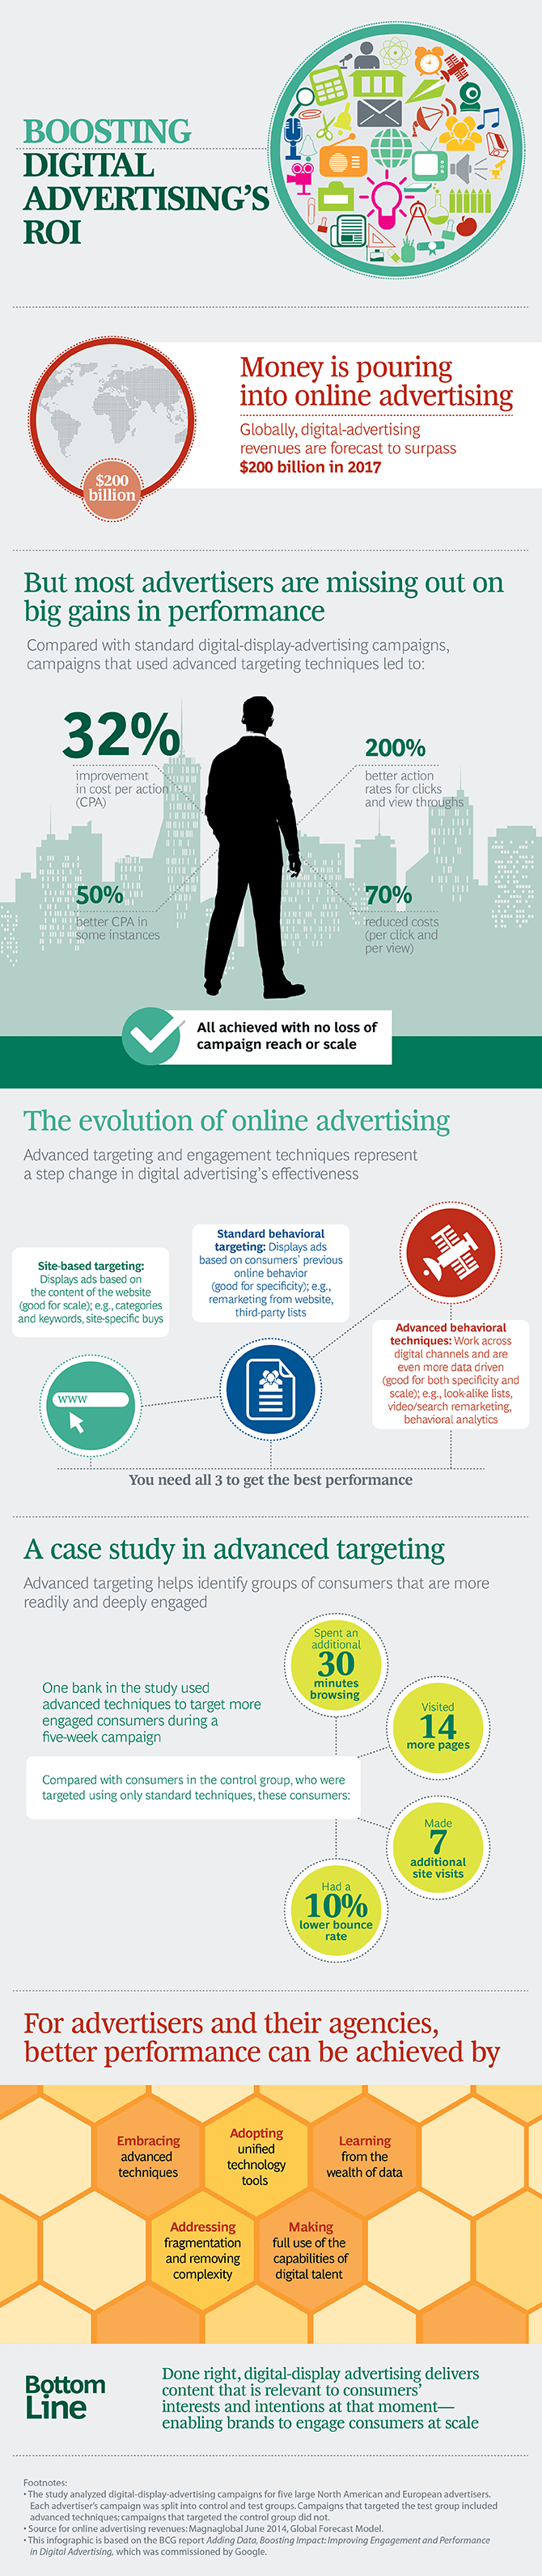 BCG_Boosting_Digital Advertisings_ROI